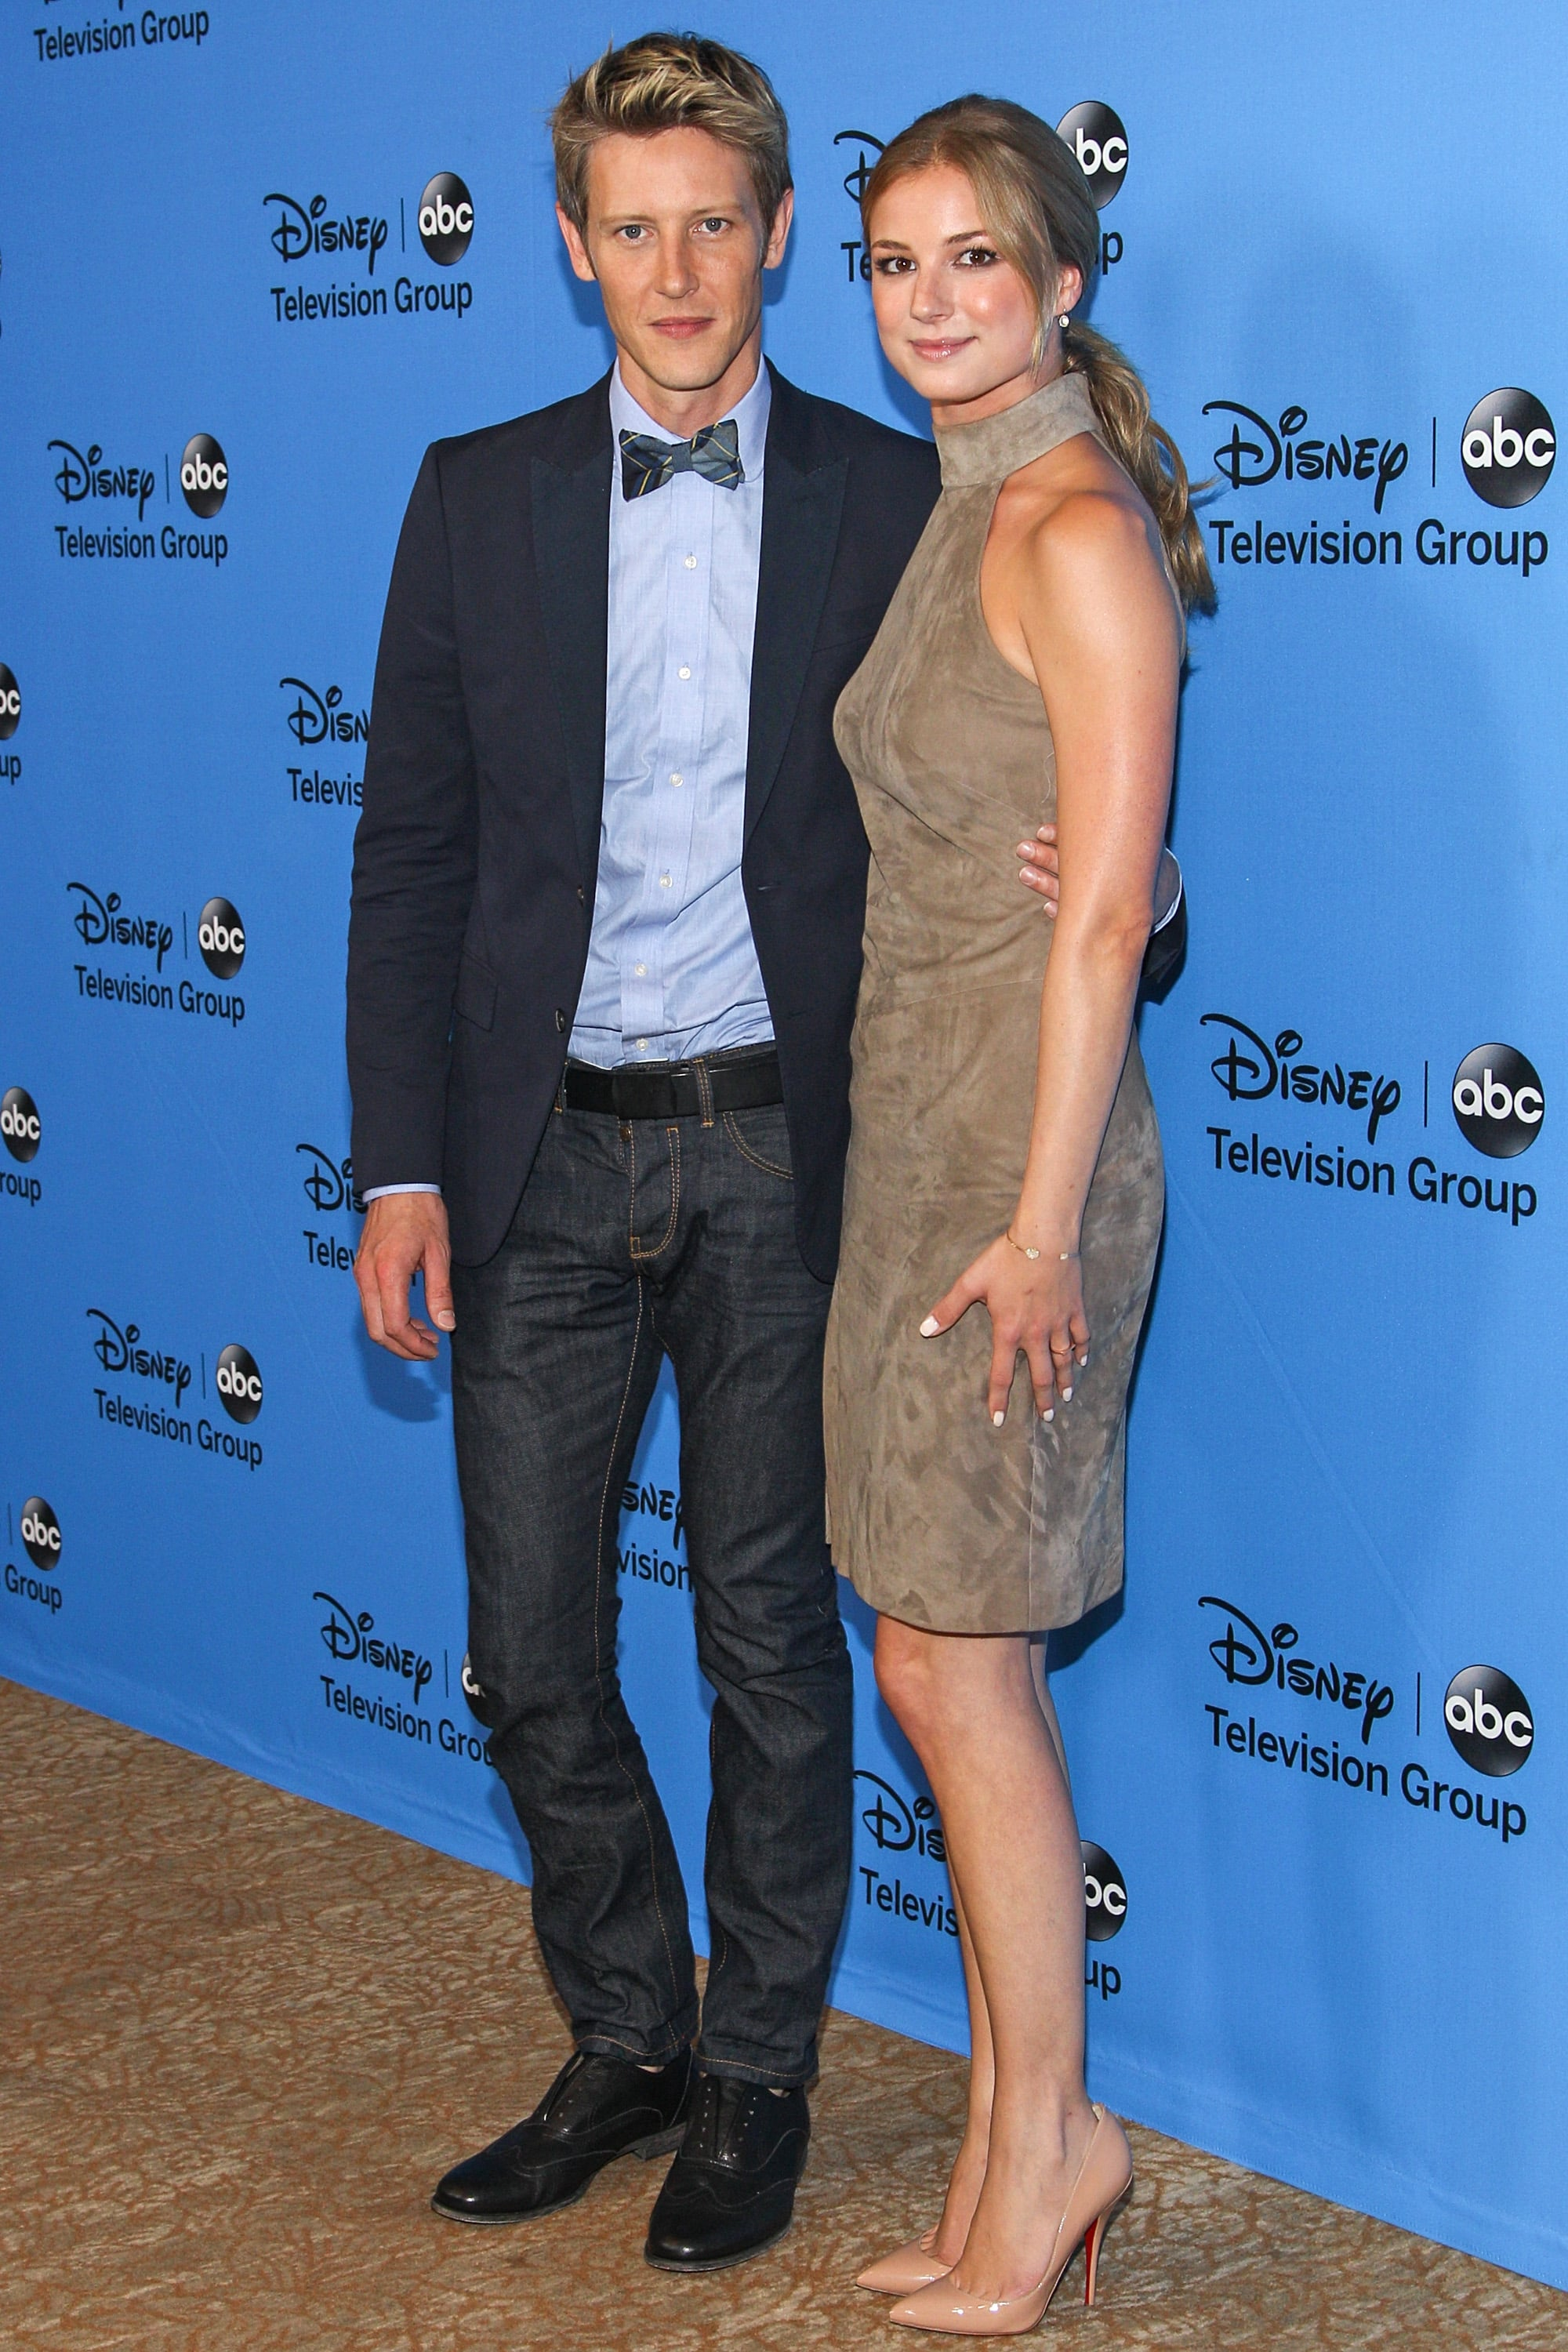 Revenge stars Emily VanCamp and Gabriel Mann posed together at a party hosted by Disney/ABC Television Group.